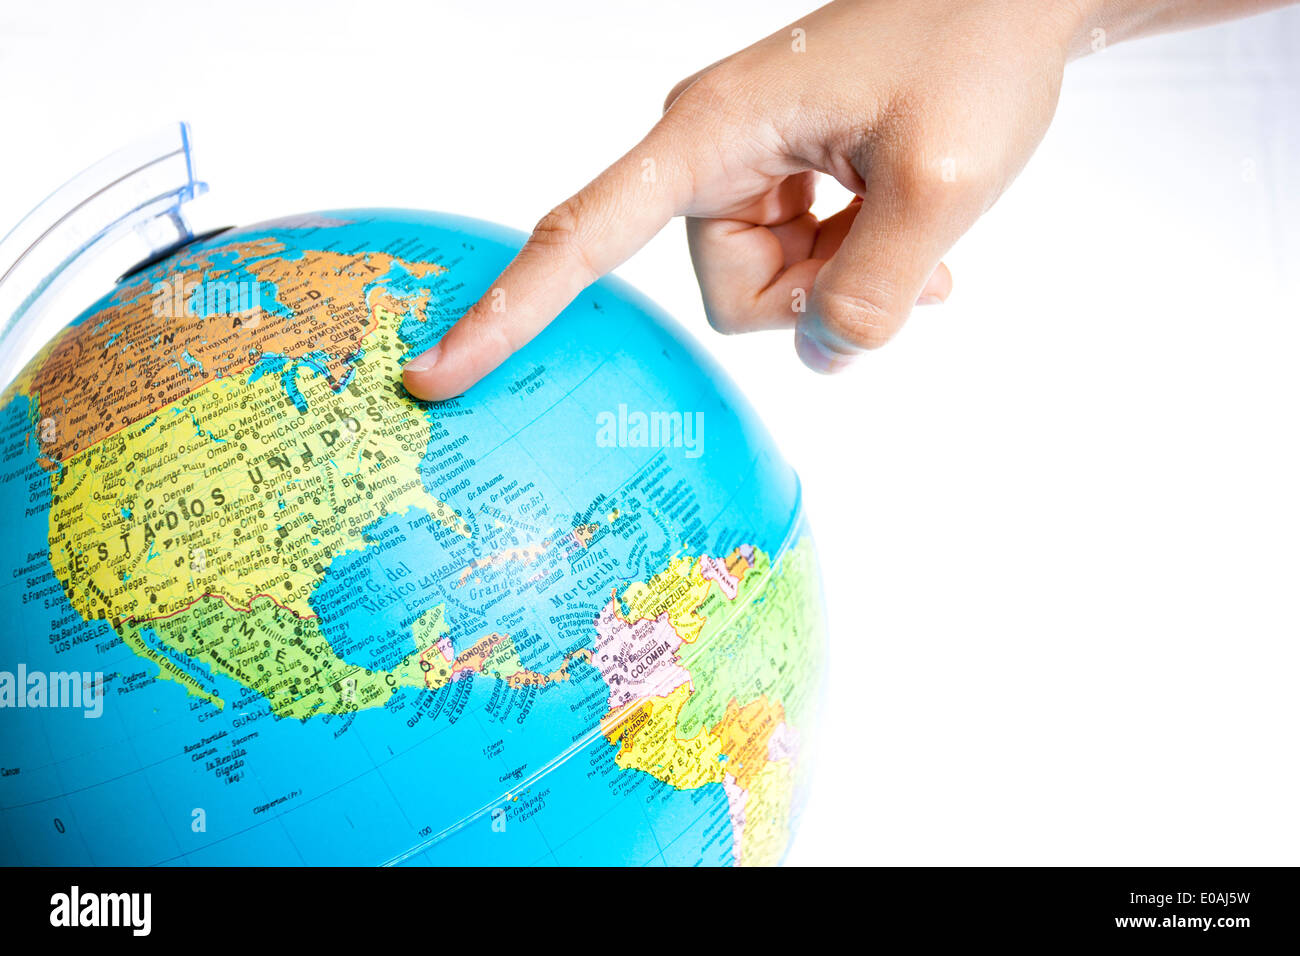 United States Map Globe Stock Photos & United States Map ... on united states map with rivers and lakes labeled, united states waterfall locations, united states is in north america, ww1 united states map, united states usa travel map, united states cultural symbols, united states sun map, united states in 1790, united states of america news, united states richmond map, modern united states map, united states america map, united states map grey, chaco canyon archaeological site map, united states global map, large united states highway map, united states phoenix map, united states space view, silver burdett and ginn inc. united states map, united states capes,